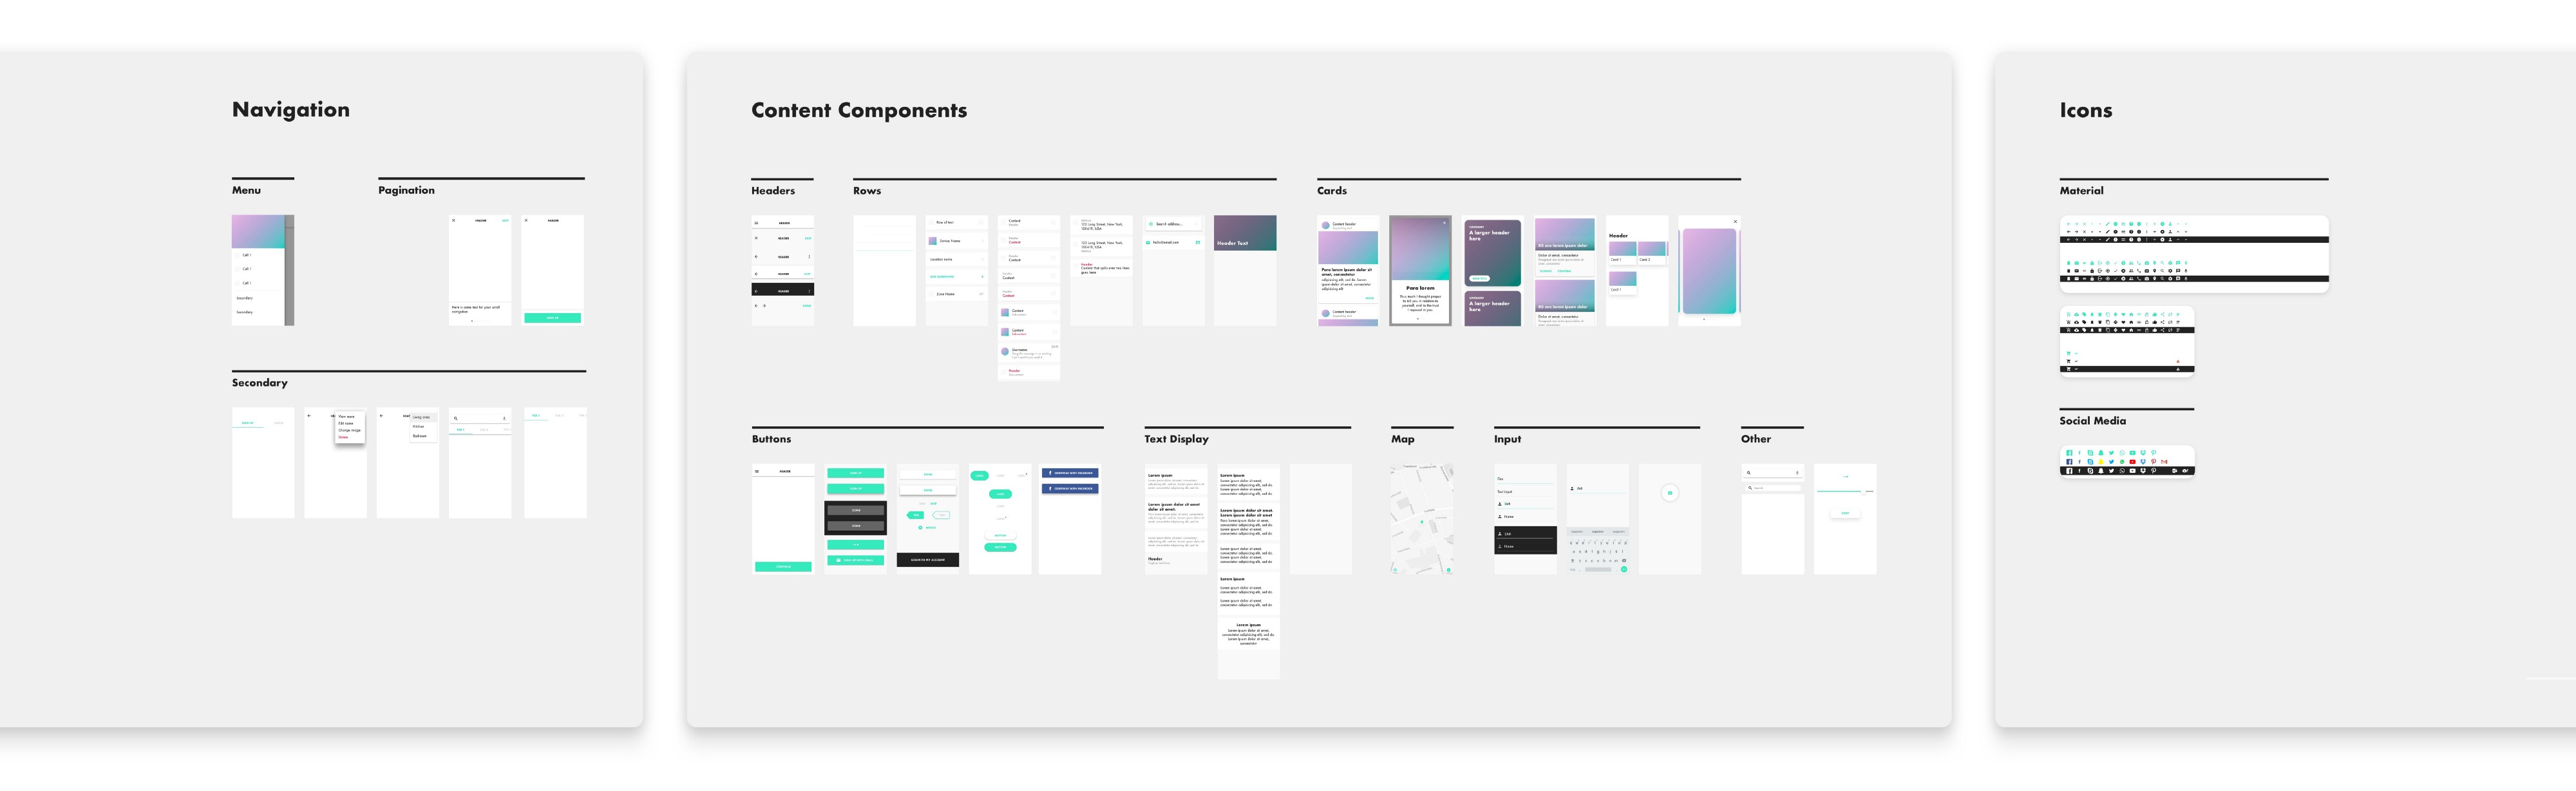 How to Save UI Designers & Front-End Developers up to 50% of Their Time